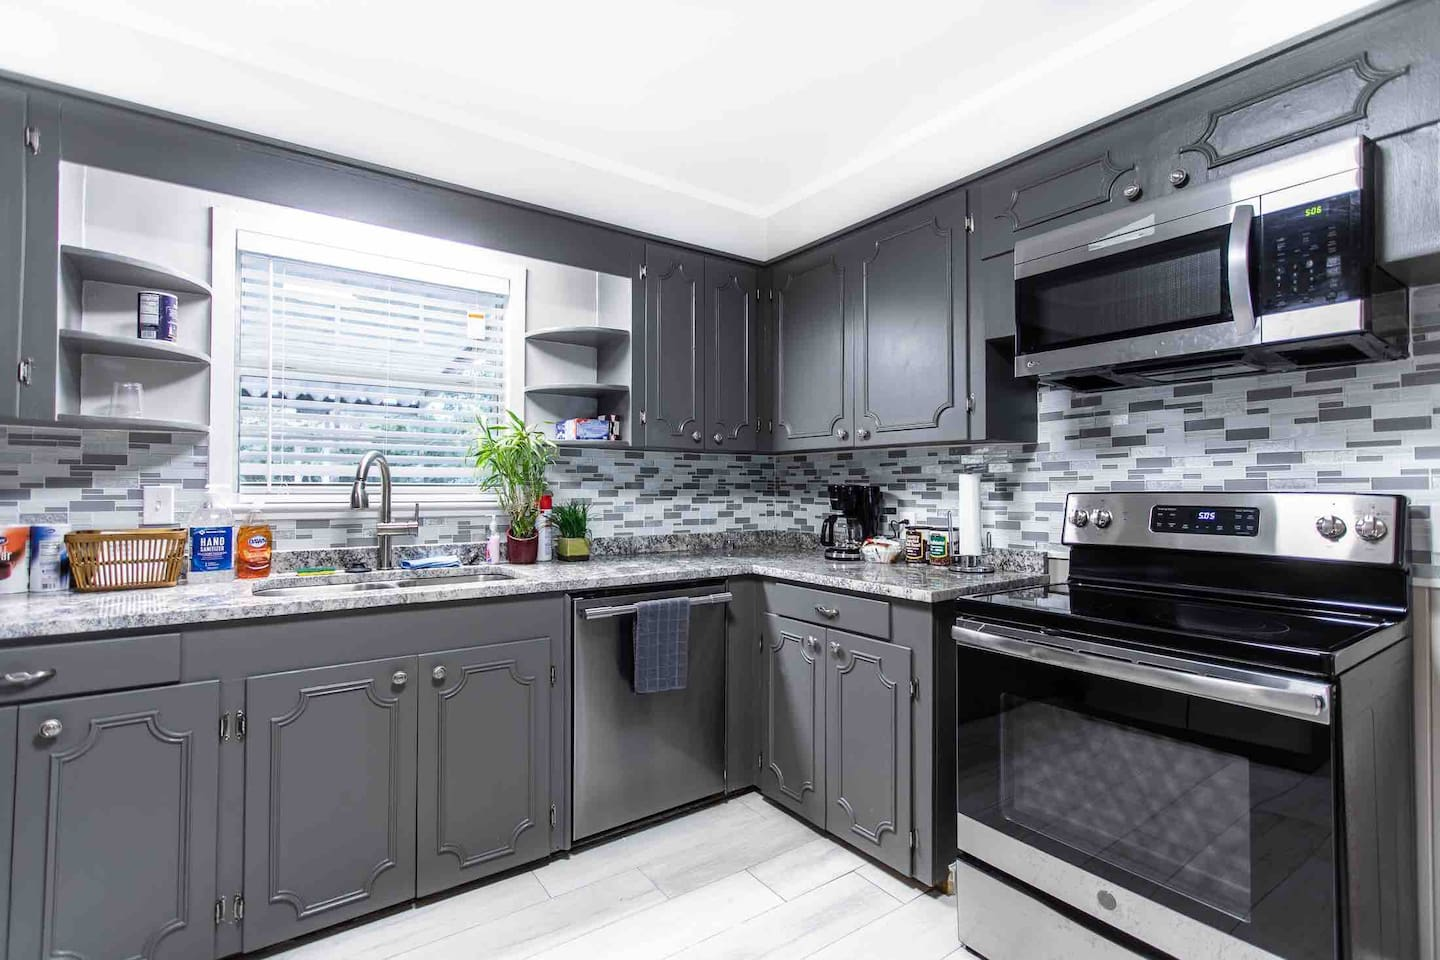 Brand new kitchen with stainless steel appliances. Everything you need to cook is here.